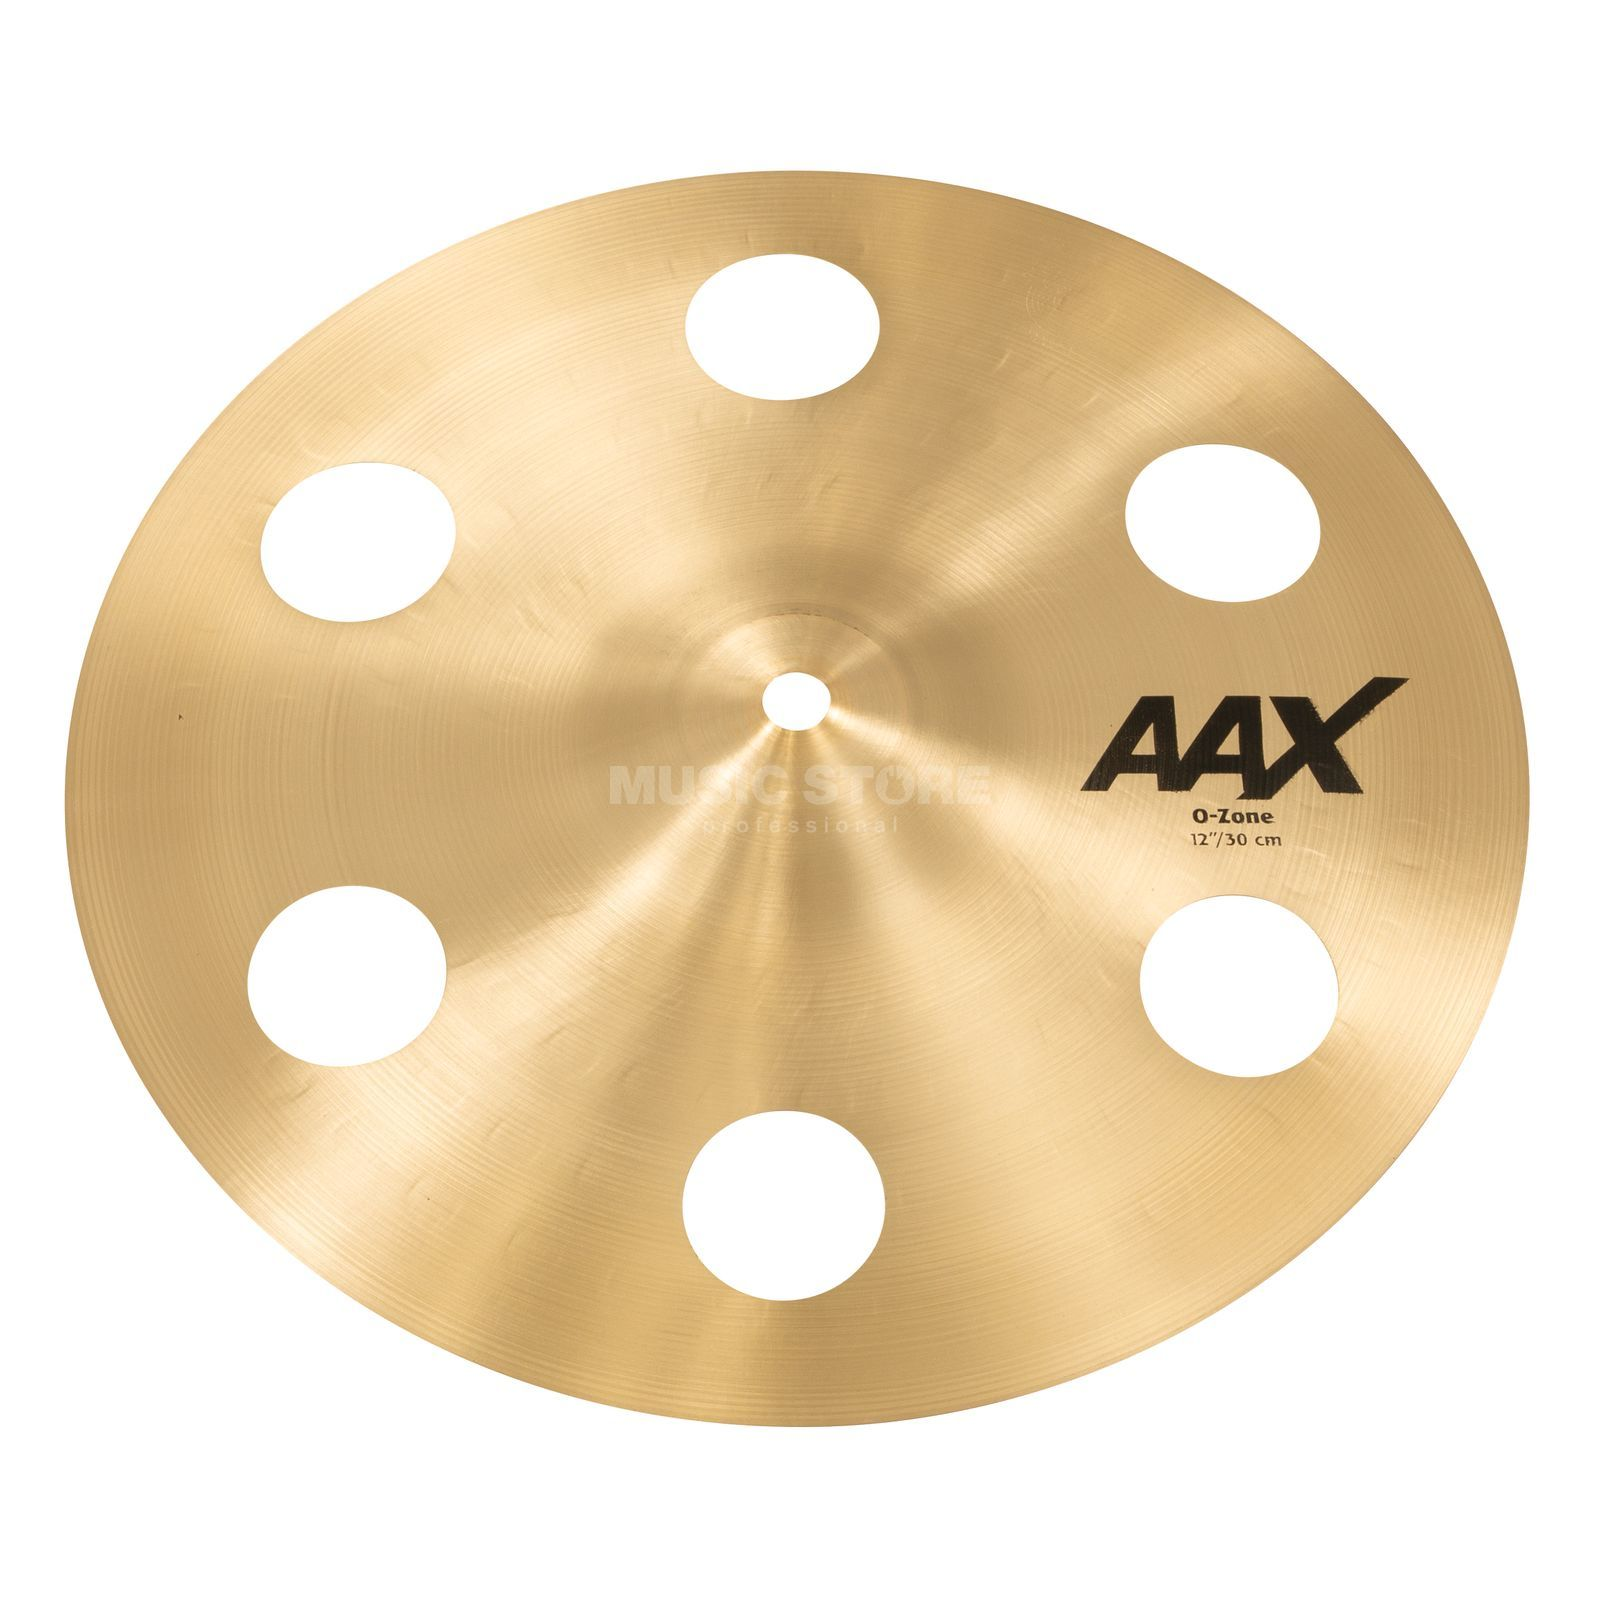 "Sabian AAX O-Zone Splash 12"" Natural Finish Produktbild"